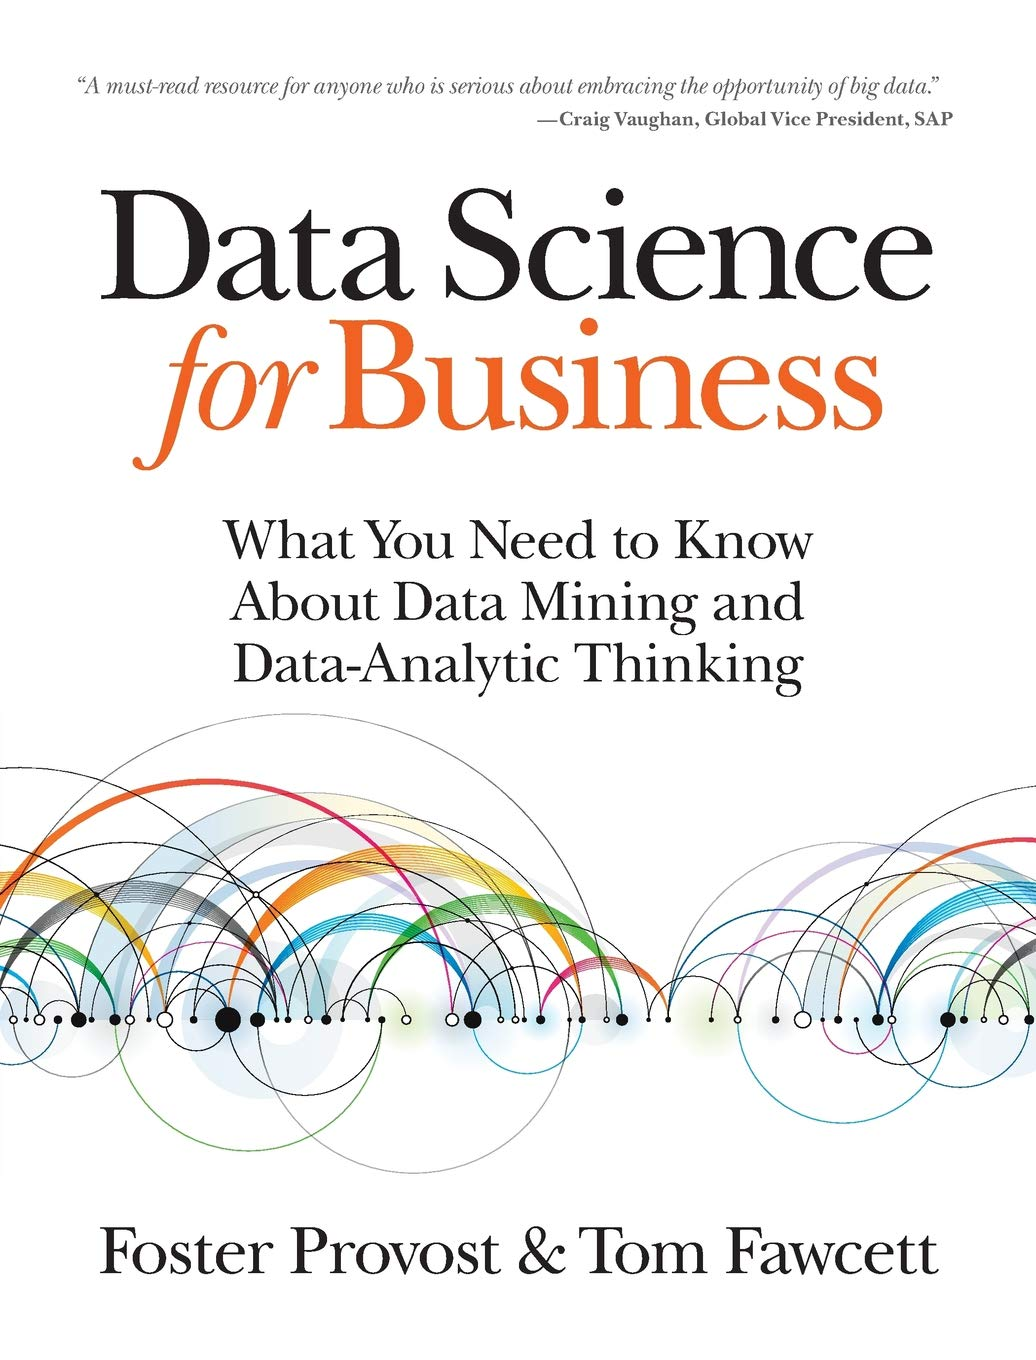 Data Science for Business: What You Need to Know about Data Mining and Data-Analytic Thinking by imusti